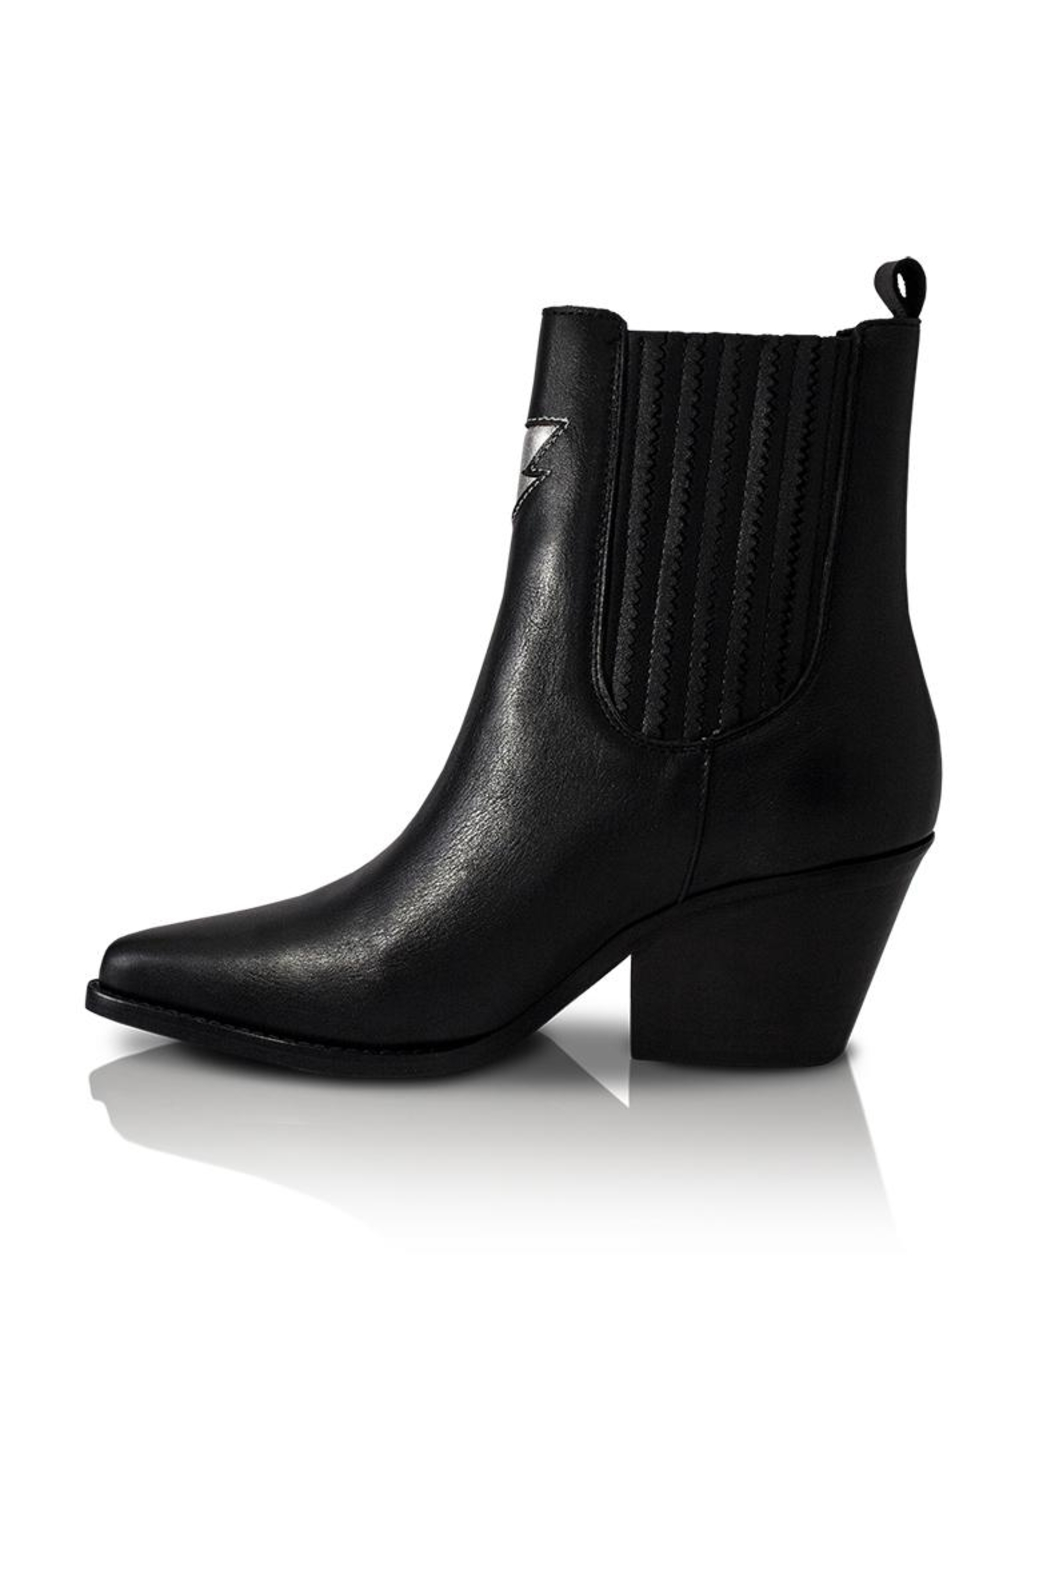 Bala Di Gala Lyra Black Leather Bootie - Front Cropped Image